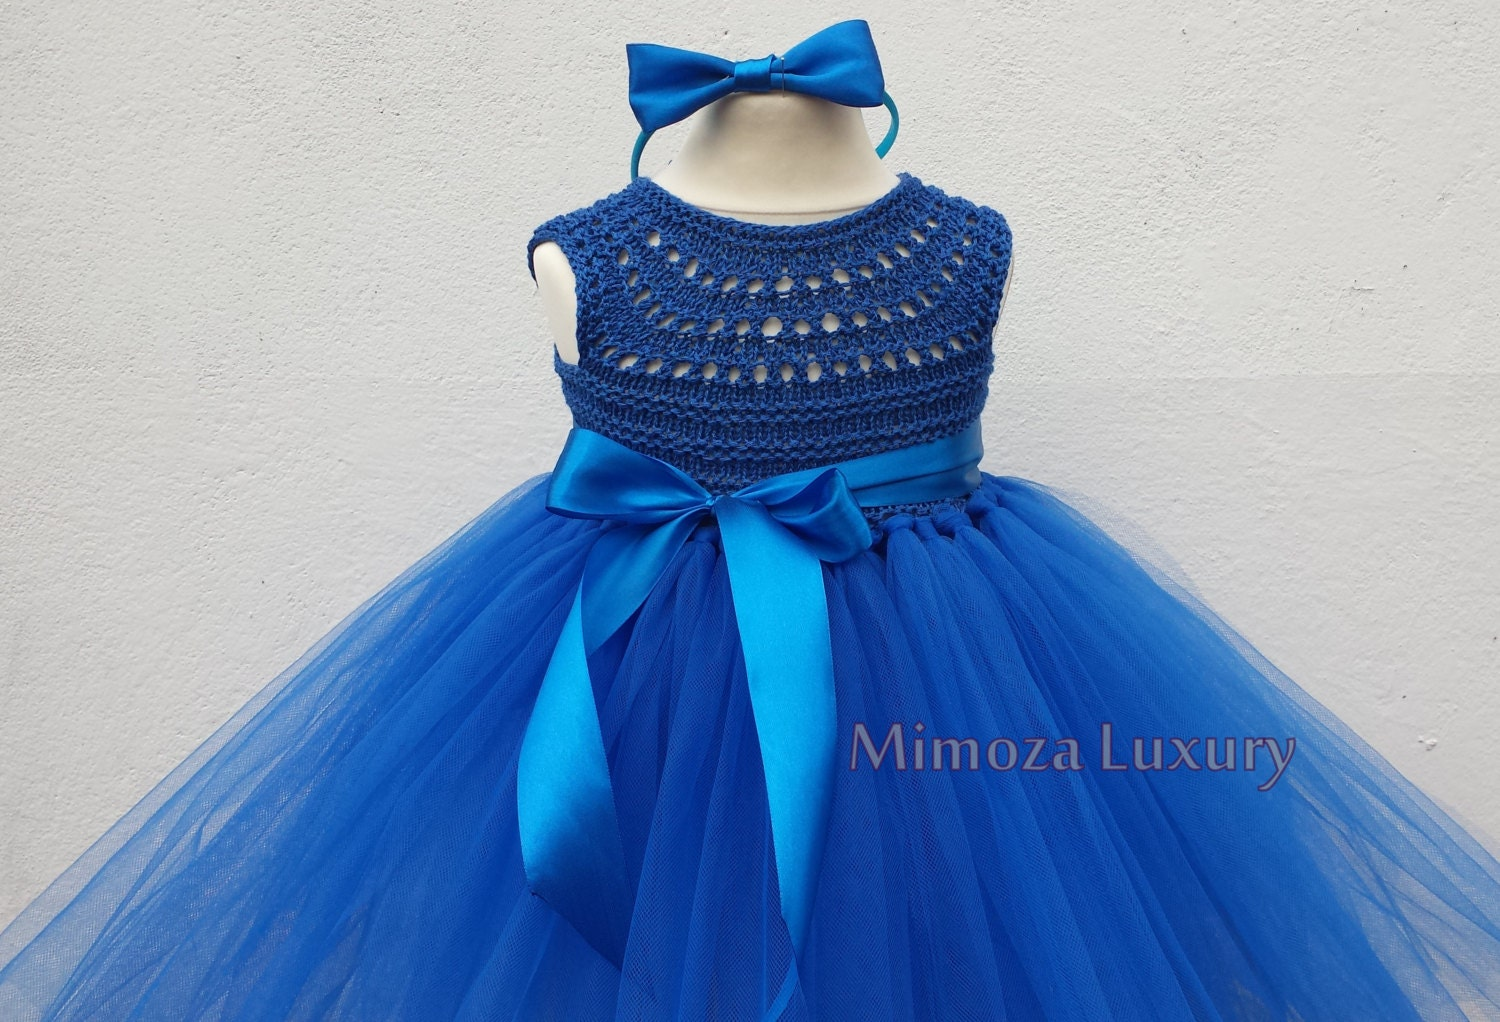 eb58ad666447b Royal Blue Flower girl dress, Peacock blue tutu dress, royal blue ...